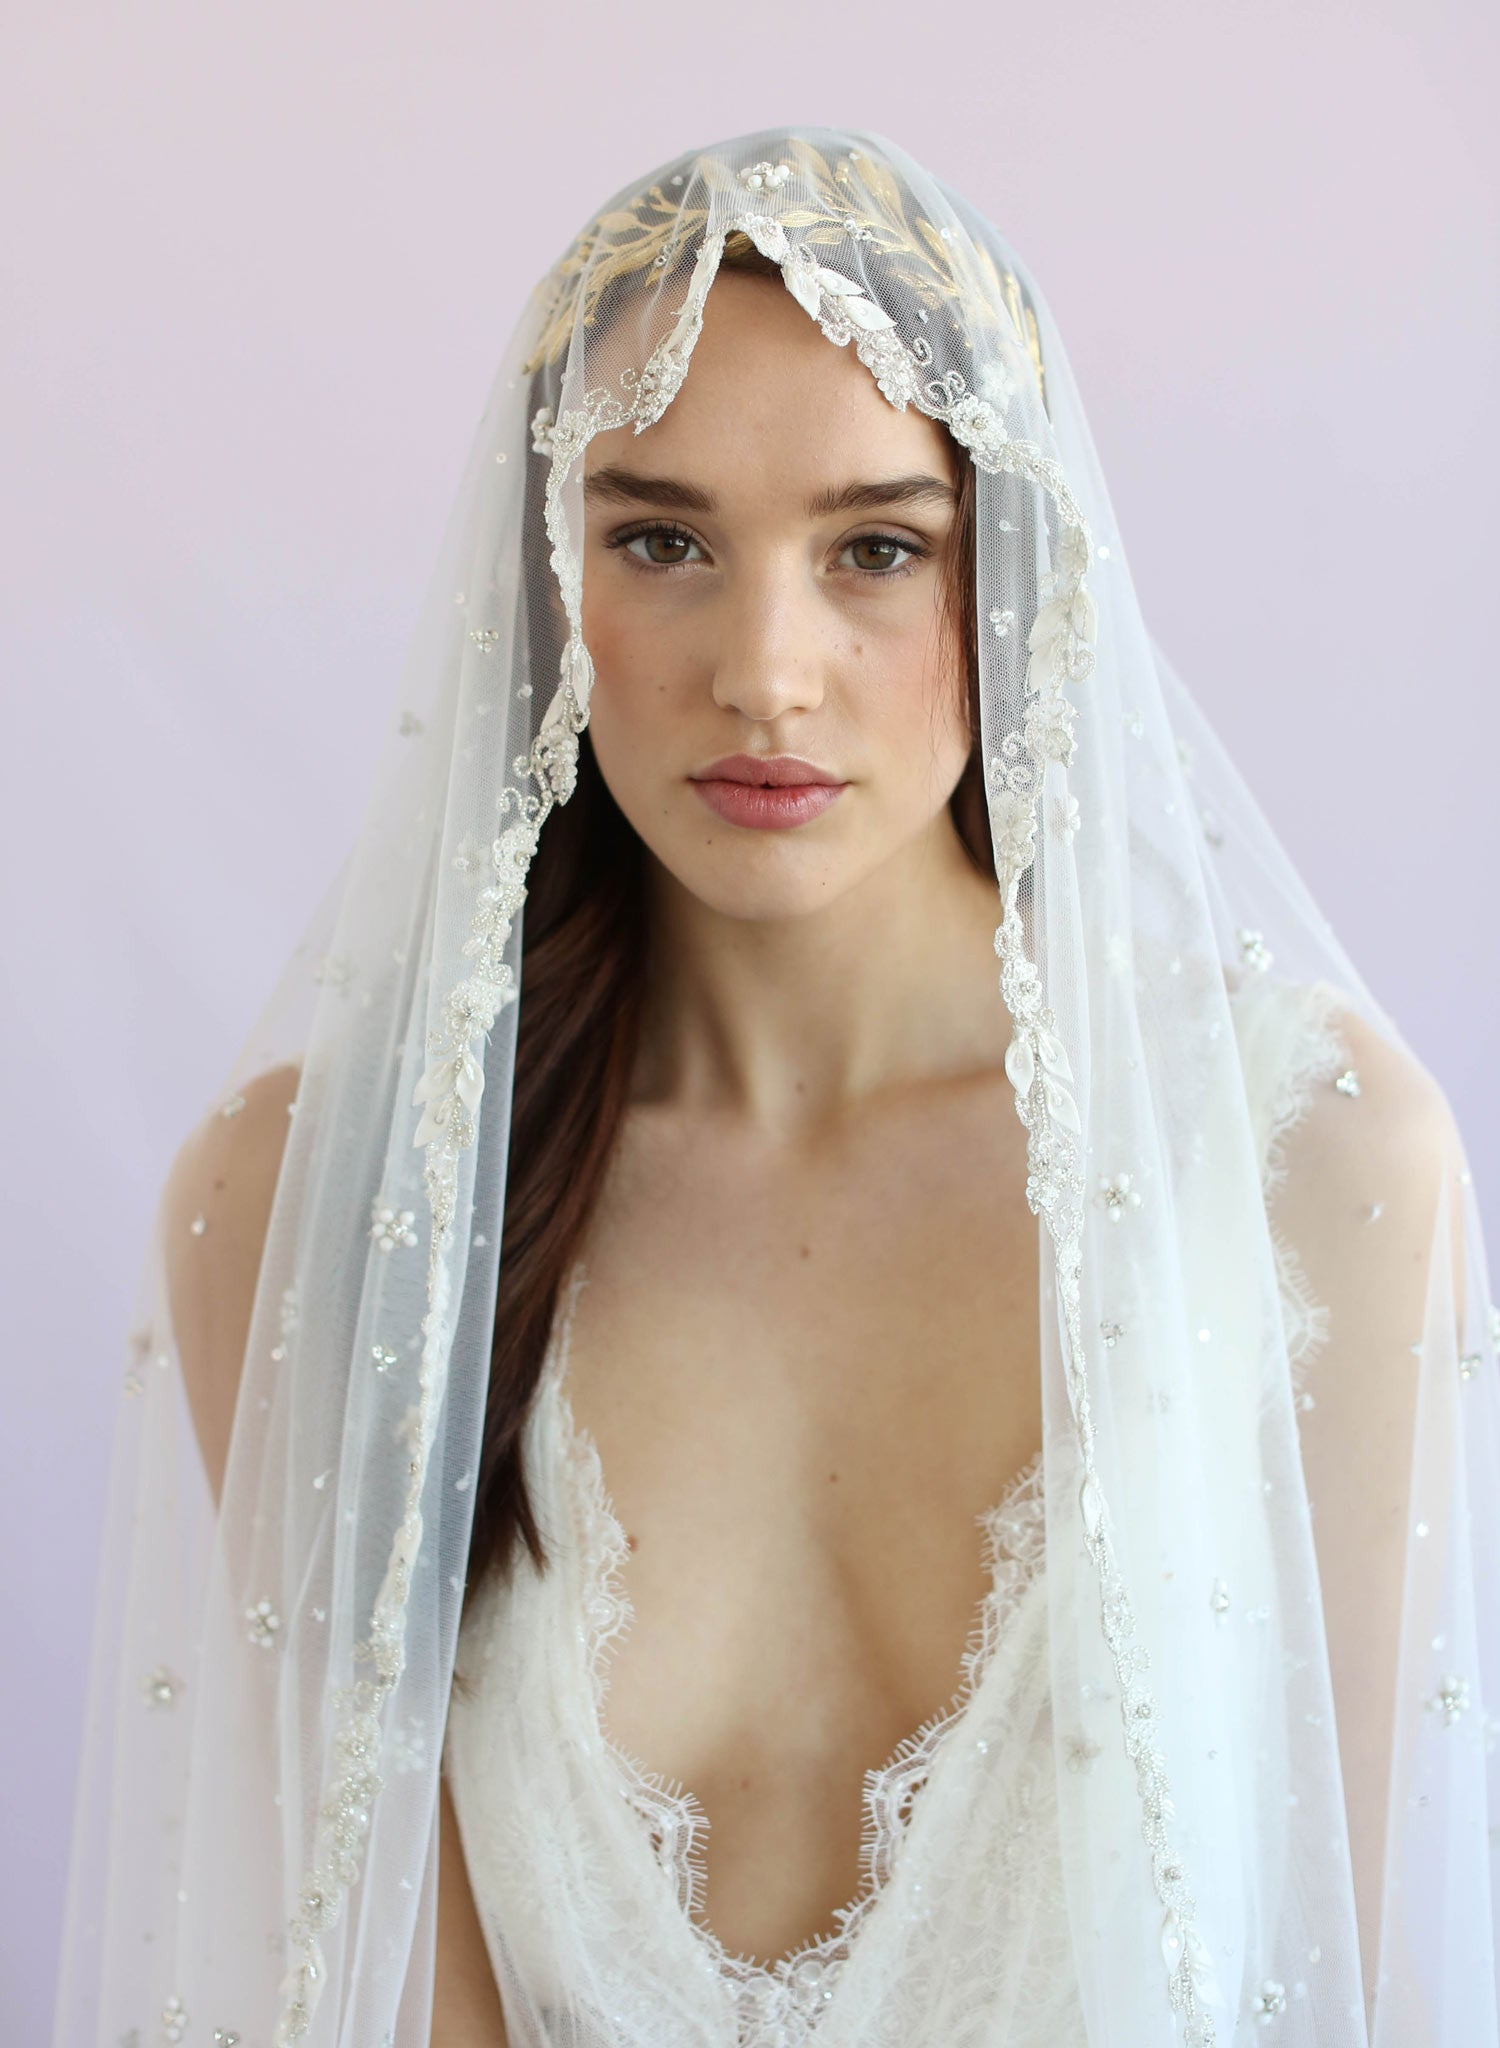 Bead speckled and embroidered Mantilla fingertip veil - Style #639